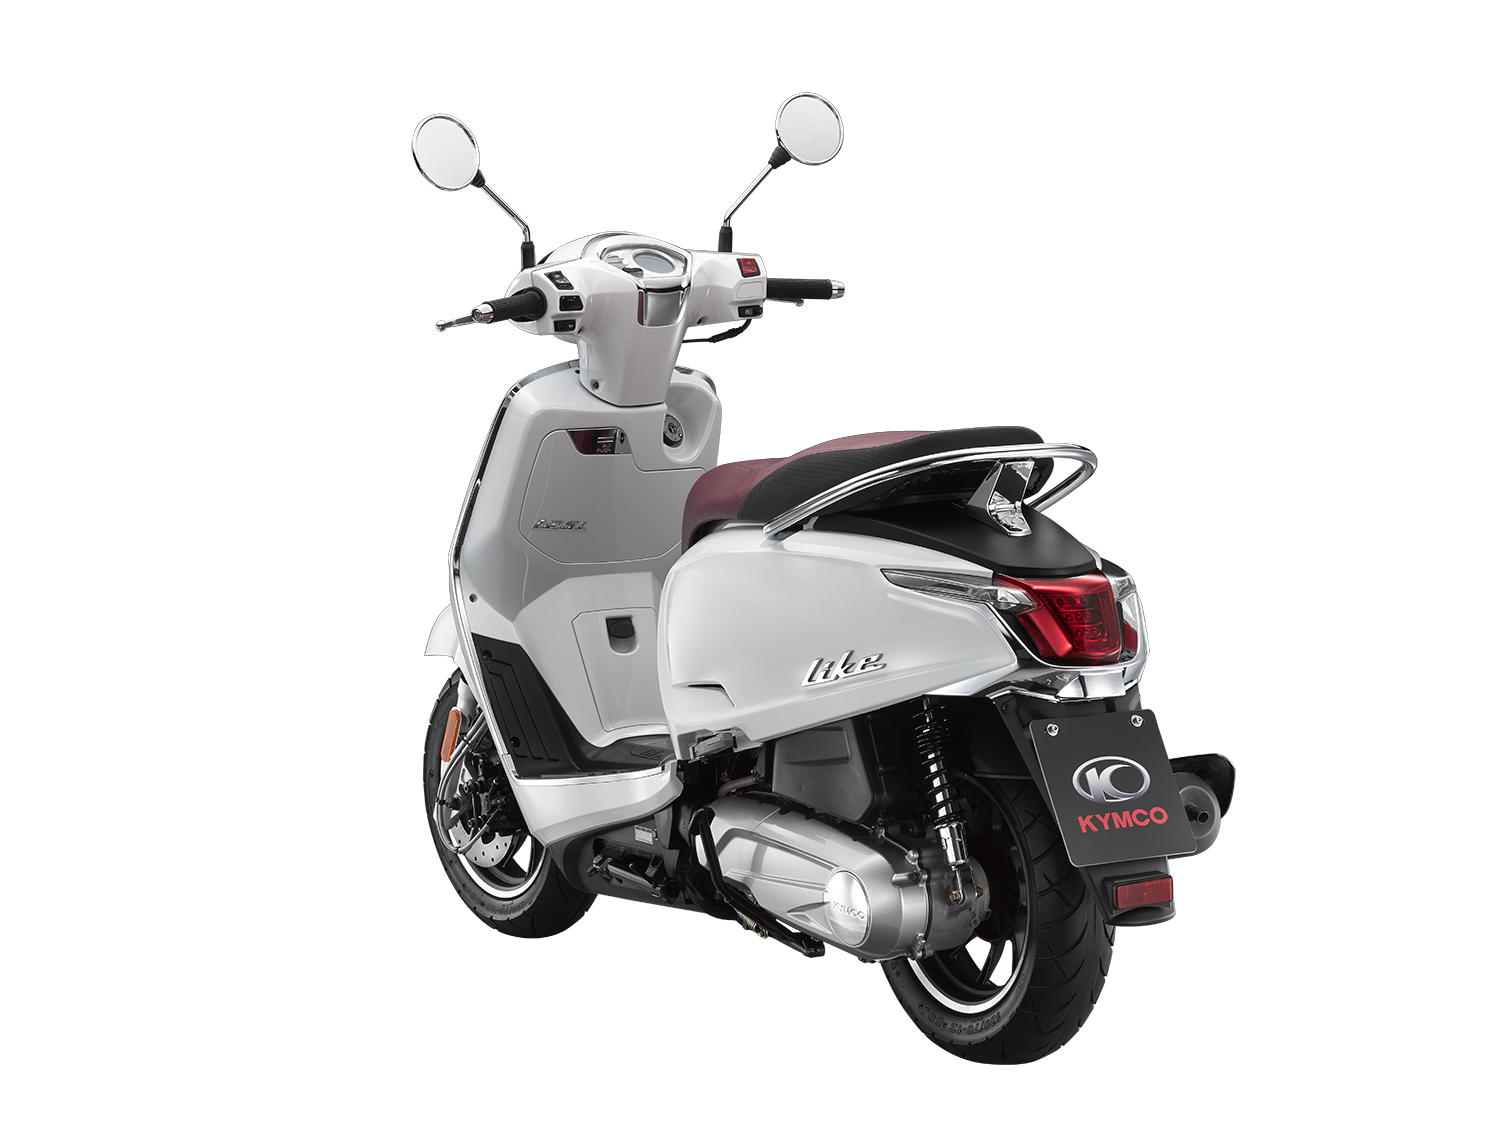 kymco new like 125i cbs city2roues scooter kymco toulouse. Black Bedroom Furniture Sets. Home Design Ideas